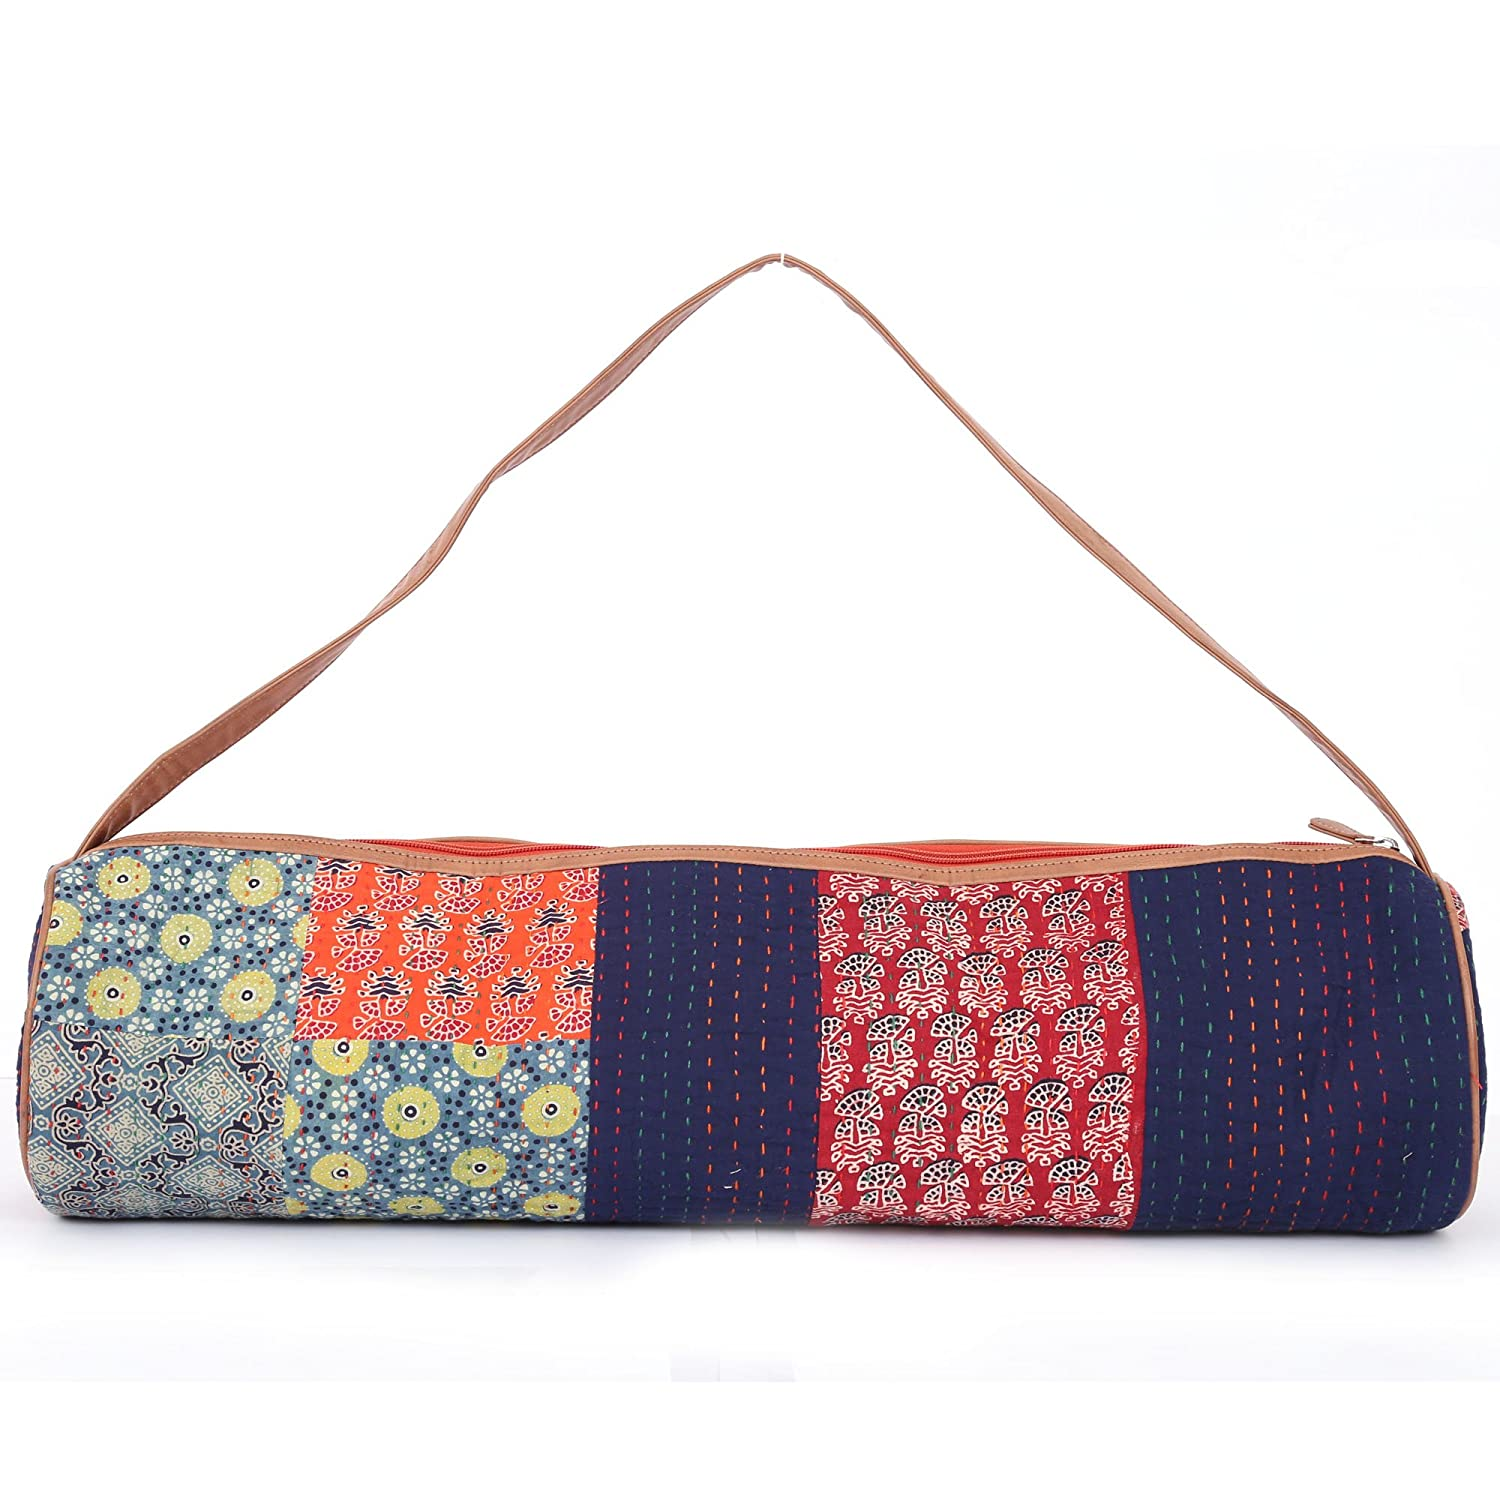 8d112cf056d JaipurSe Multi-Colored Cotton Regular Size Designer Patchwork Travel Yoga  Mat Cover/Bag: Amazon.in: Sports, Fitness & Outdoors